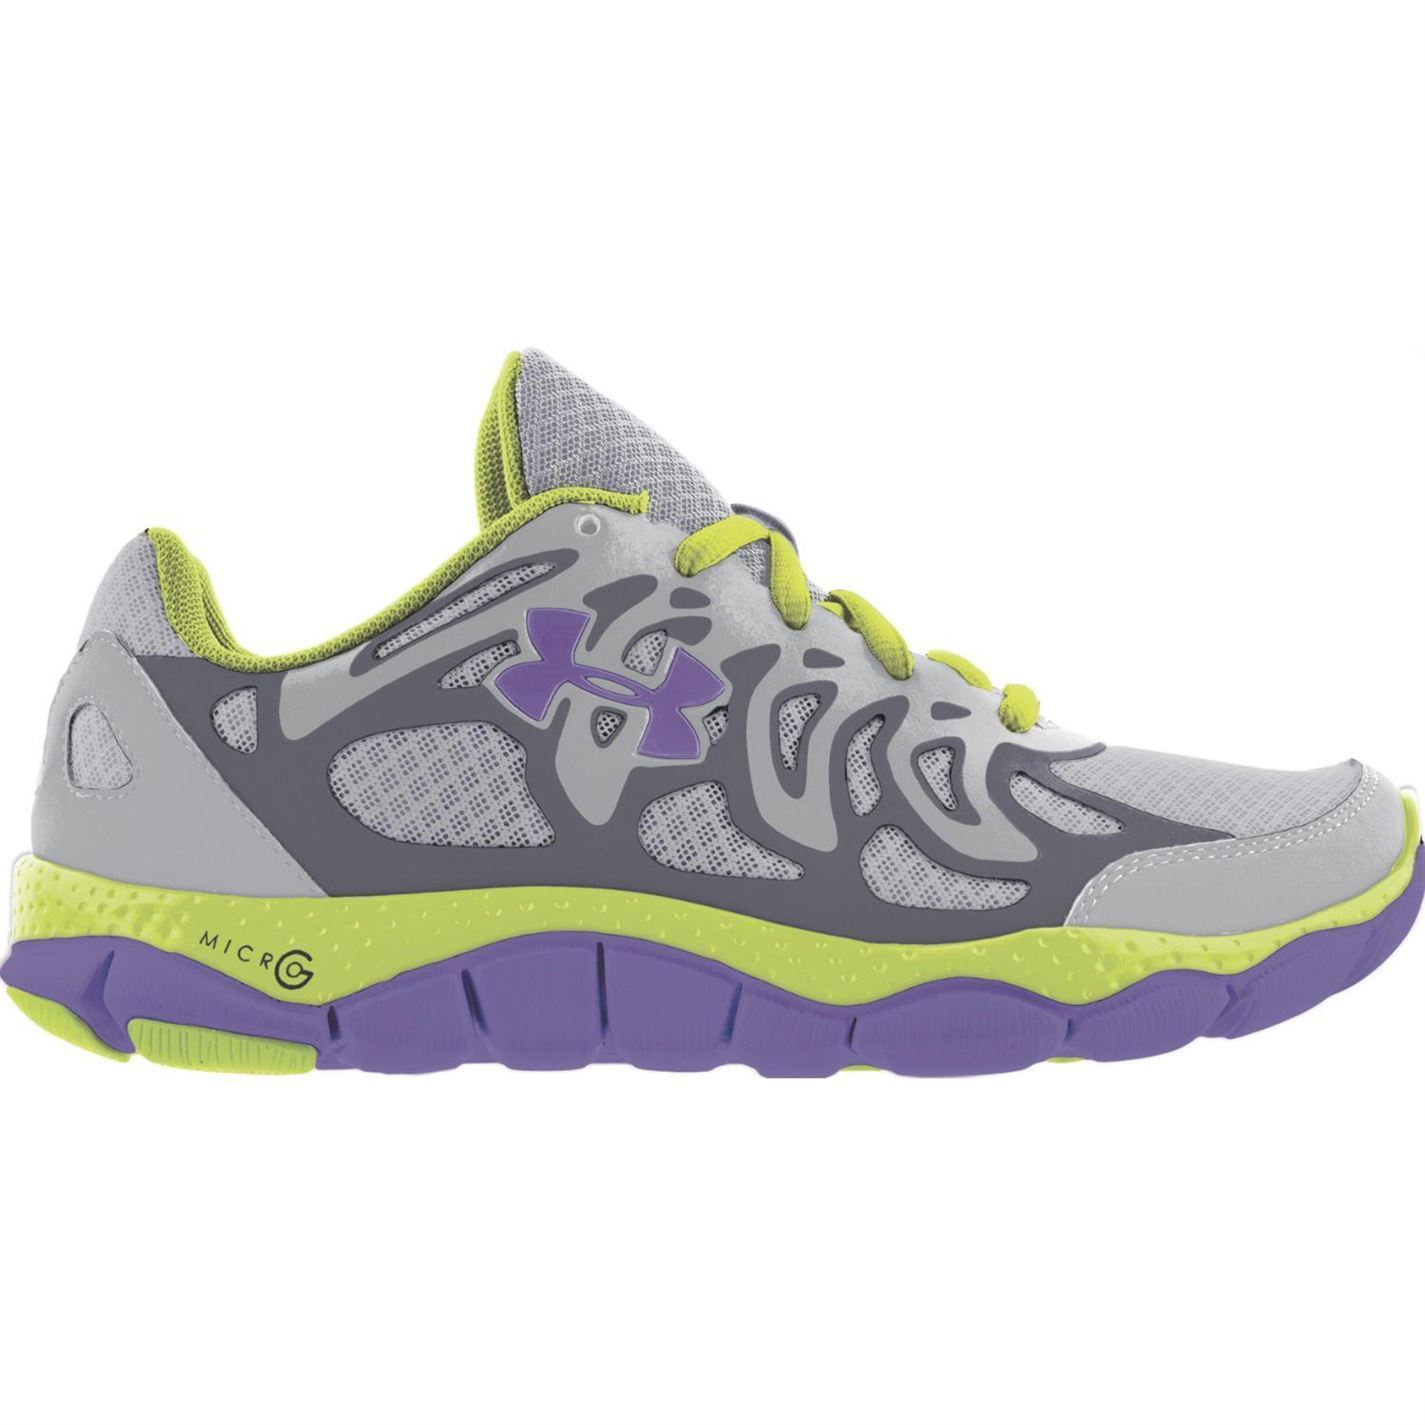 Under-Armour-Womens-Shoe-Mic-Engage-Fitness-Trainers-Lace-Sports-Shoes